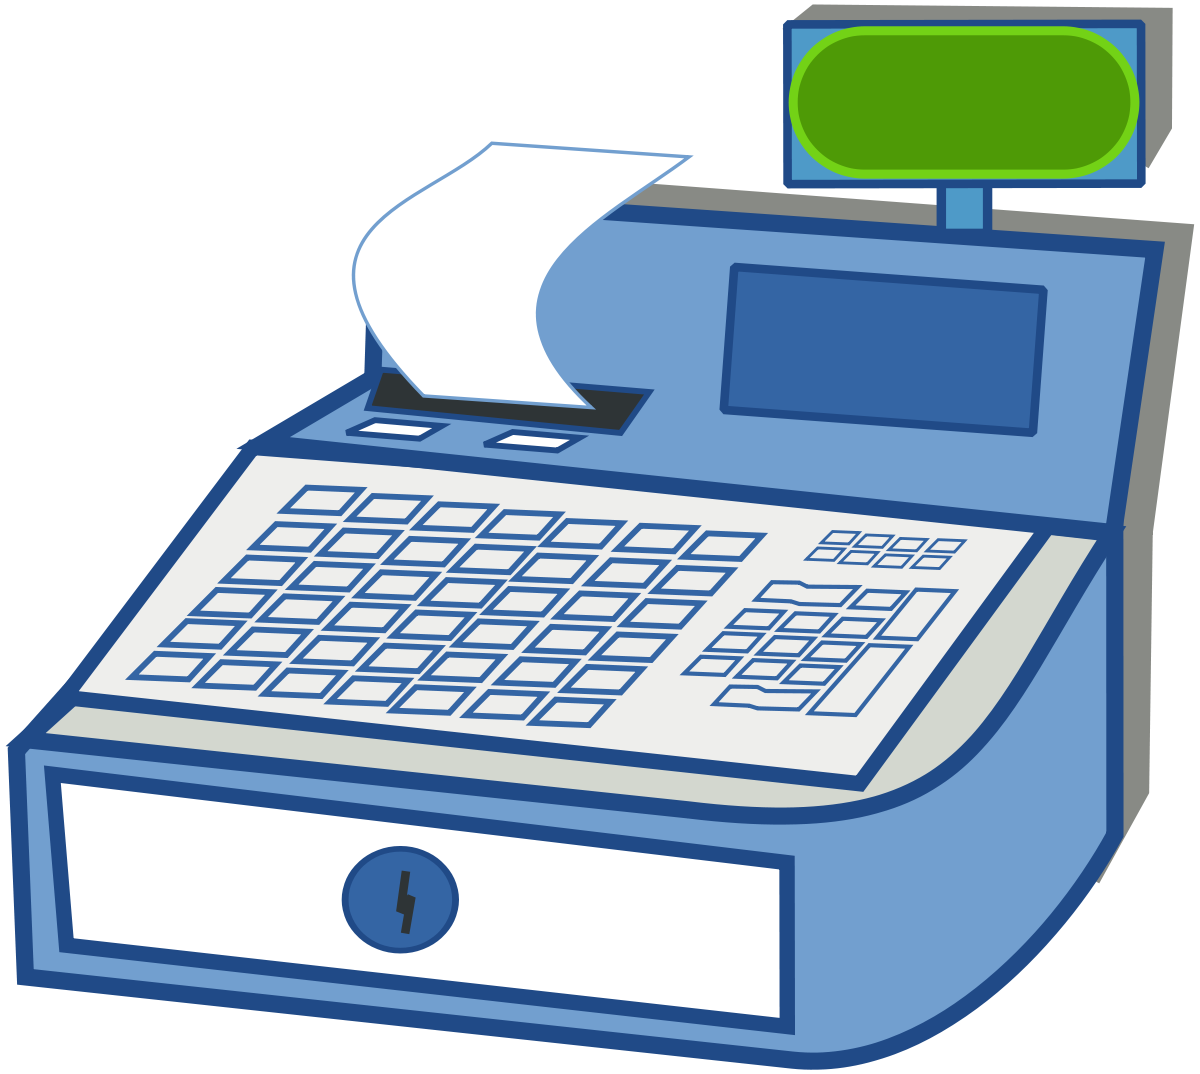 Caisse enregistreuse wiktionary . Electronics clipart office equipments